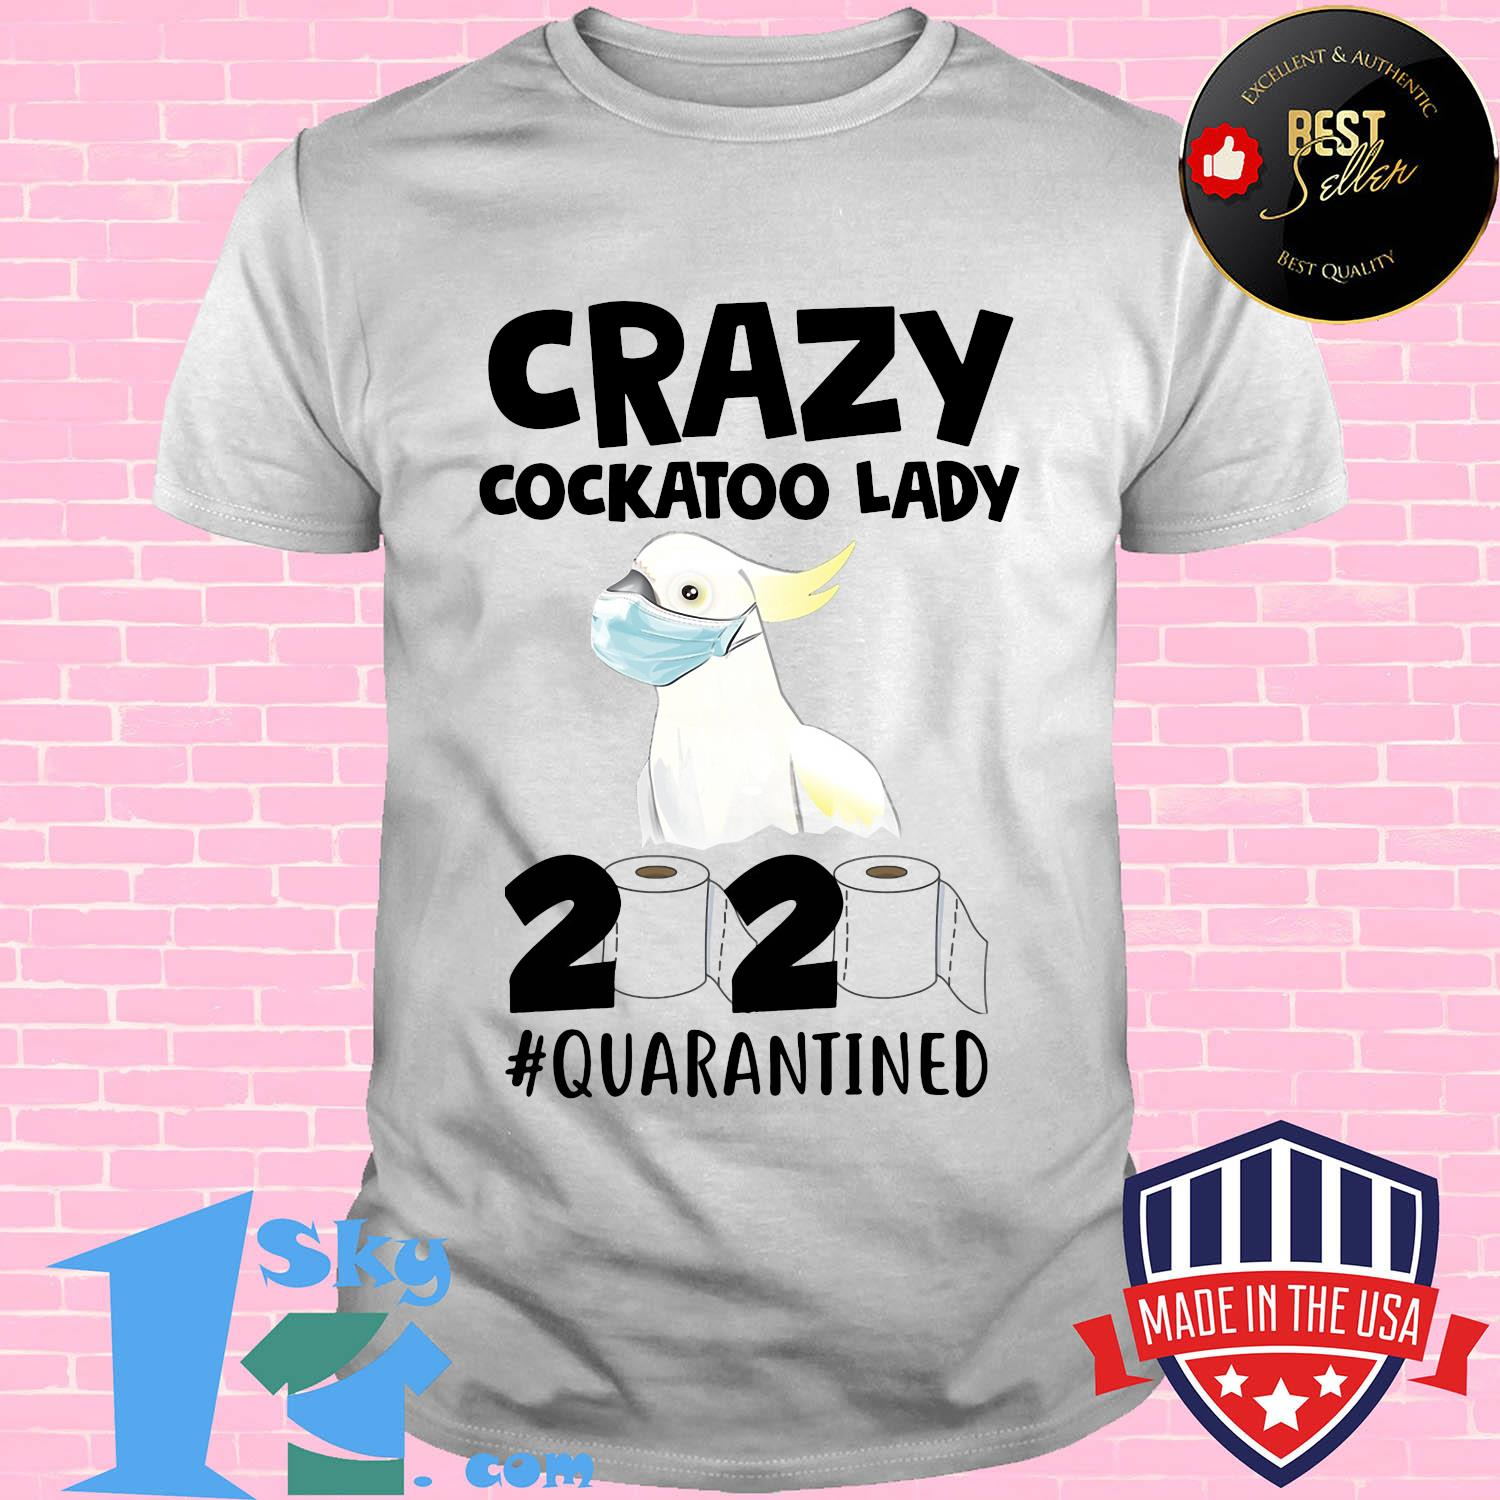 crazy cockatoo lady 2020 isolated toilet paper mask shirt Unisex - Shop trending - We offer all trend shirts - 1SkyTee